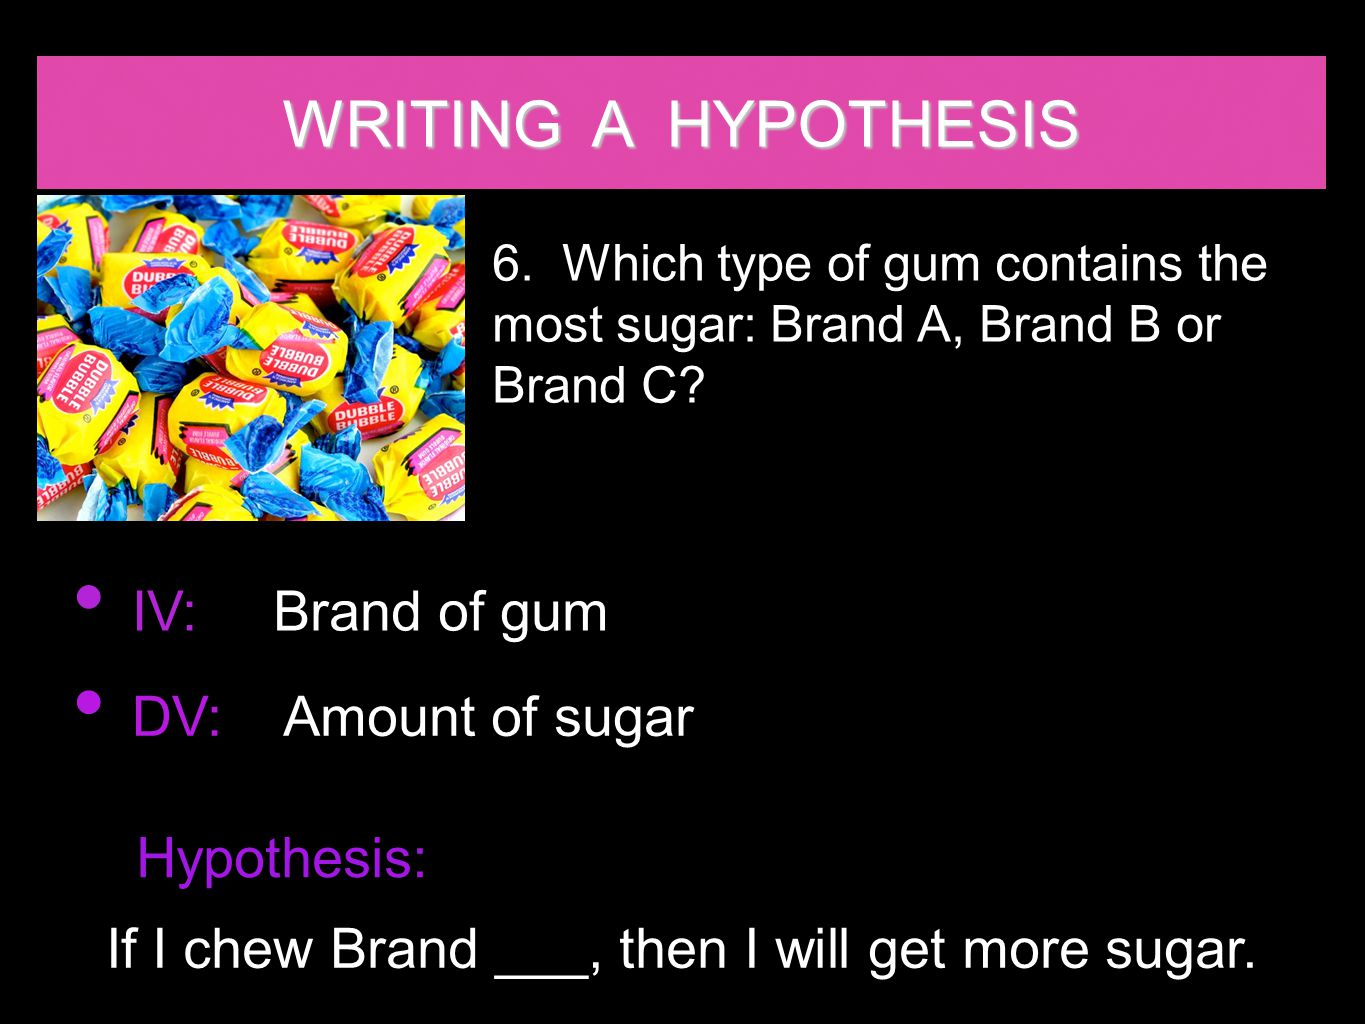 If I chew Brand ___, then I will get more sugar.